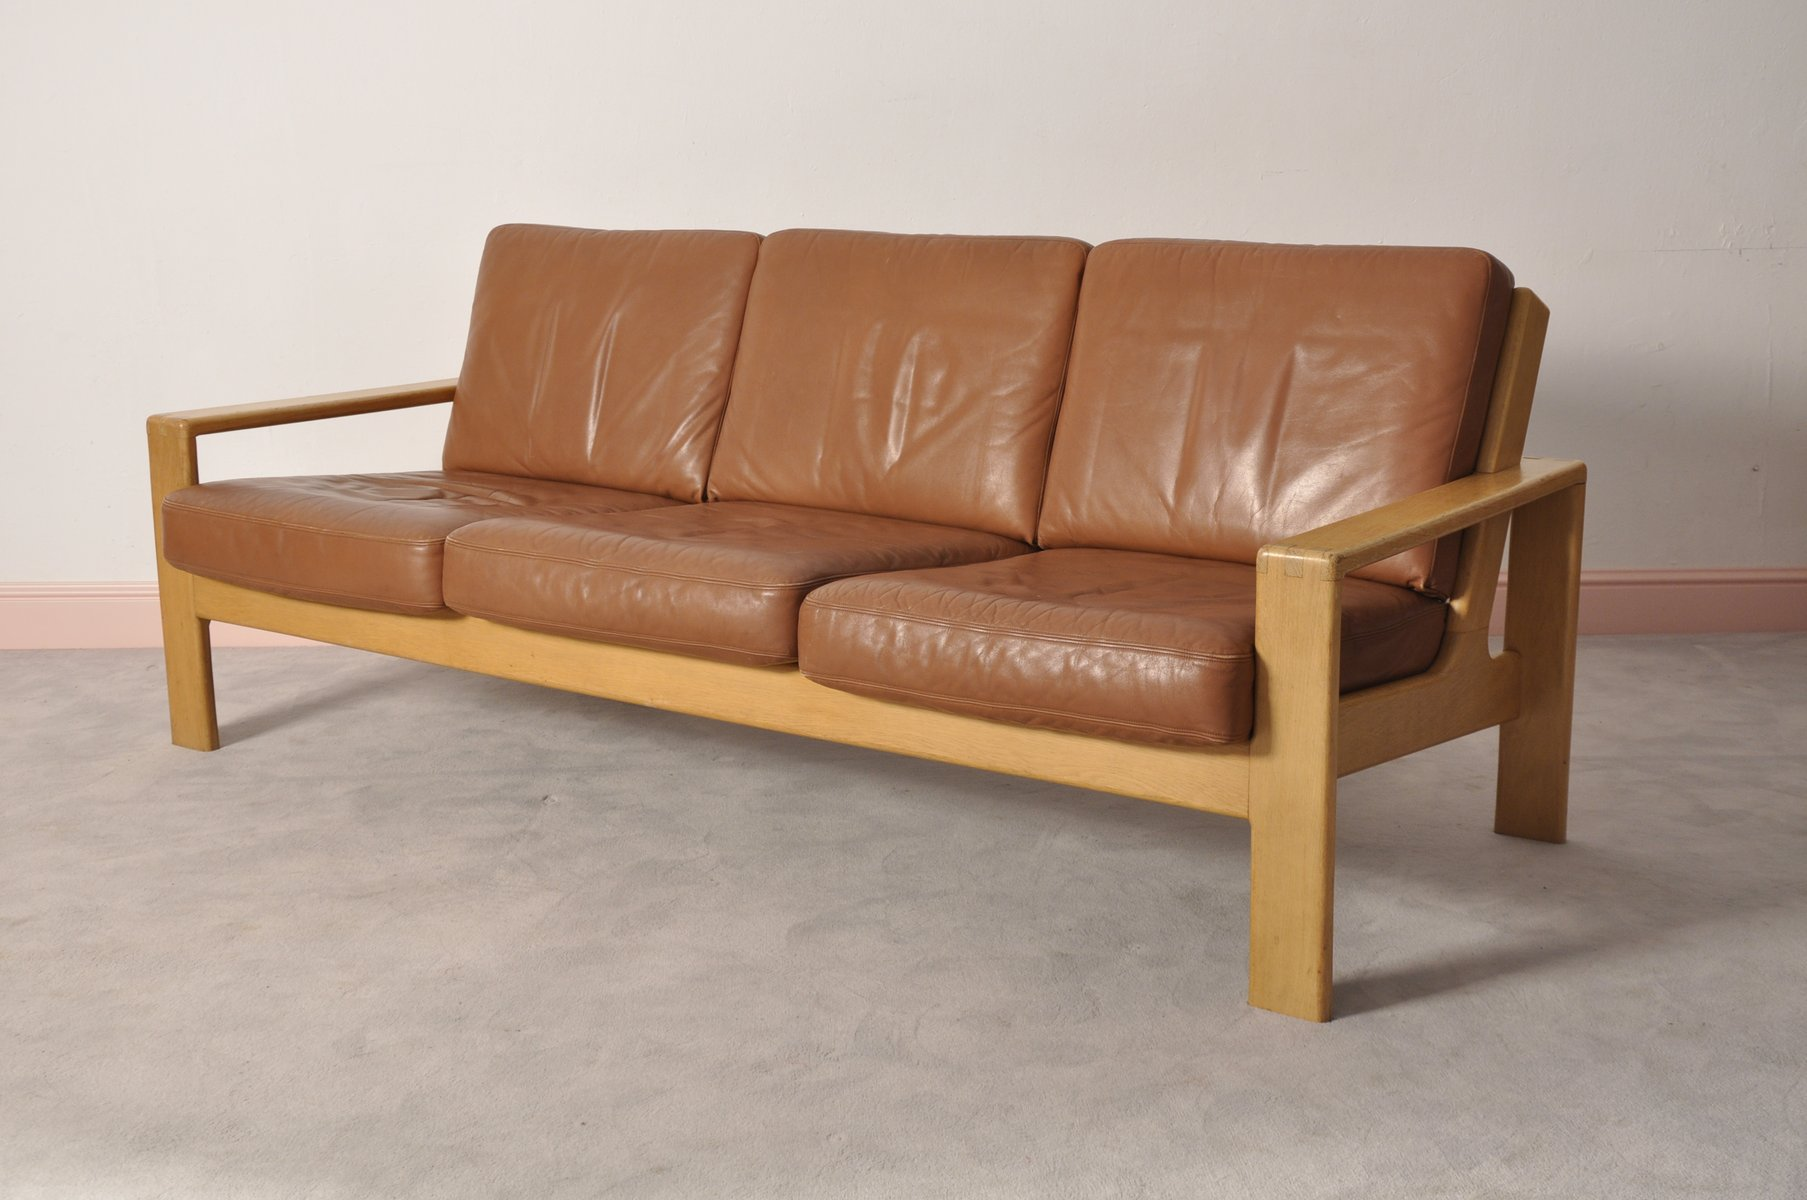 Vintage scandinavian leather oak three seater sofa for for Scandinavian sofa